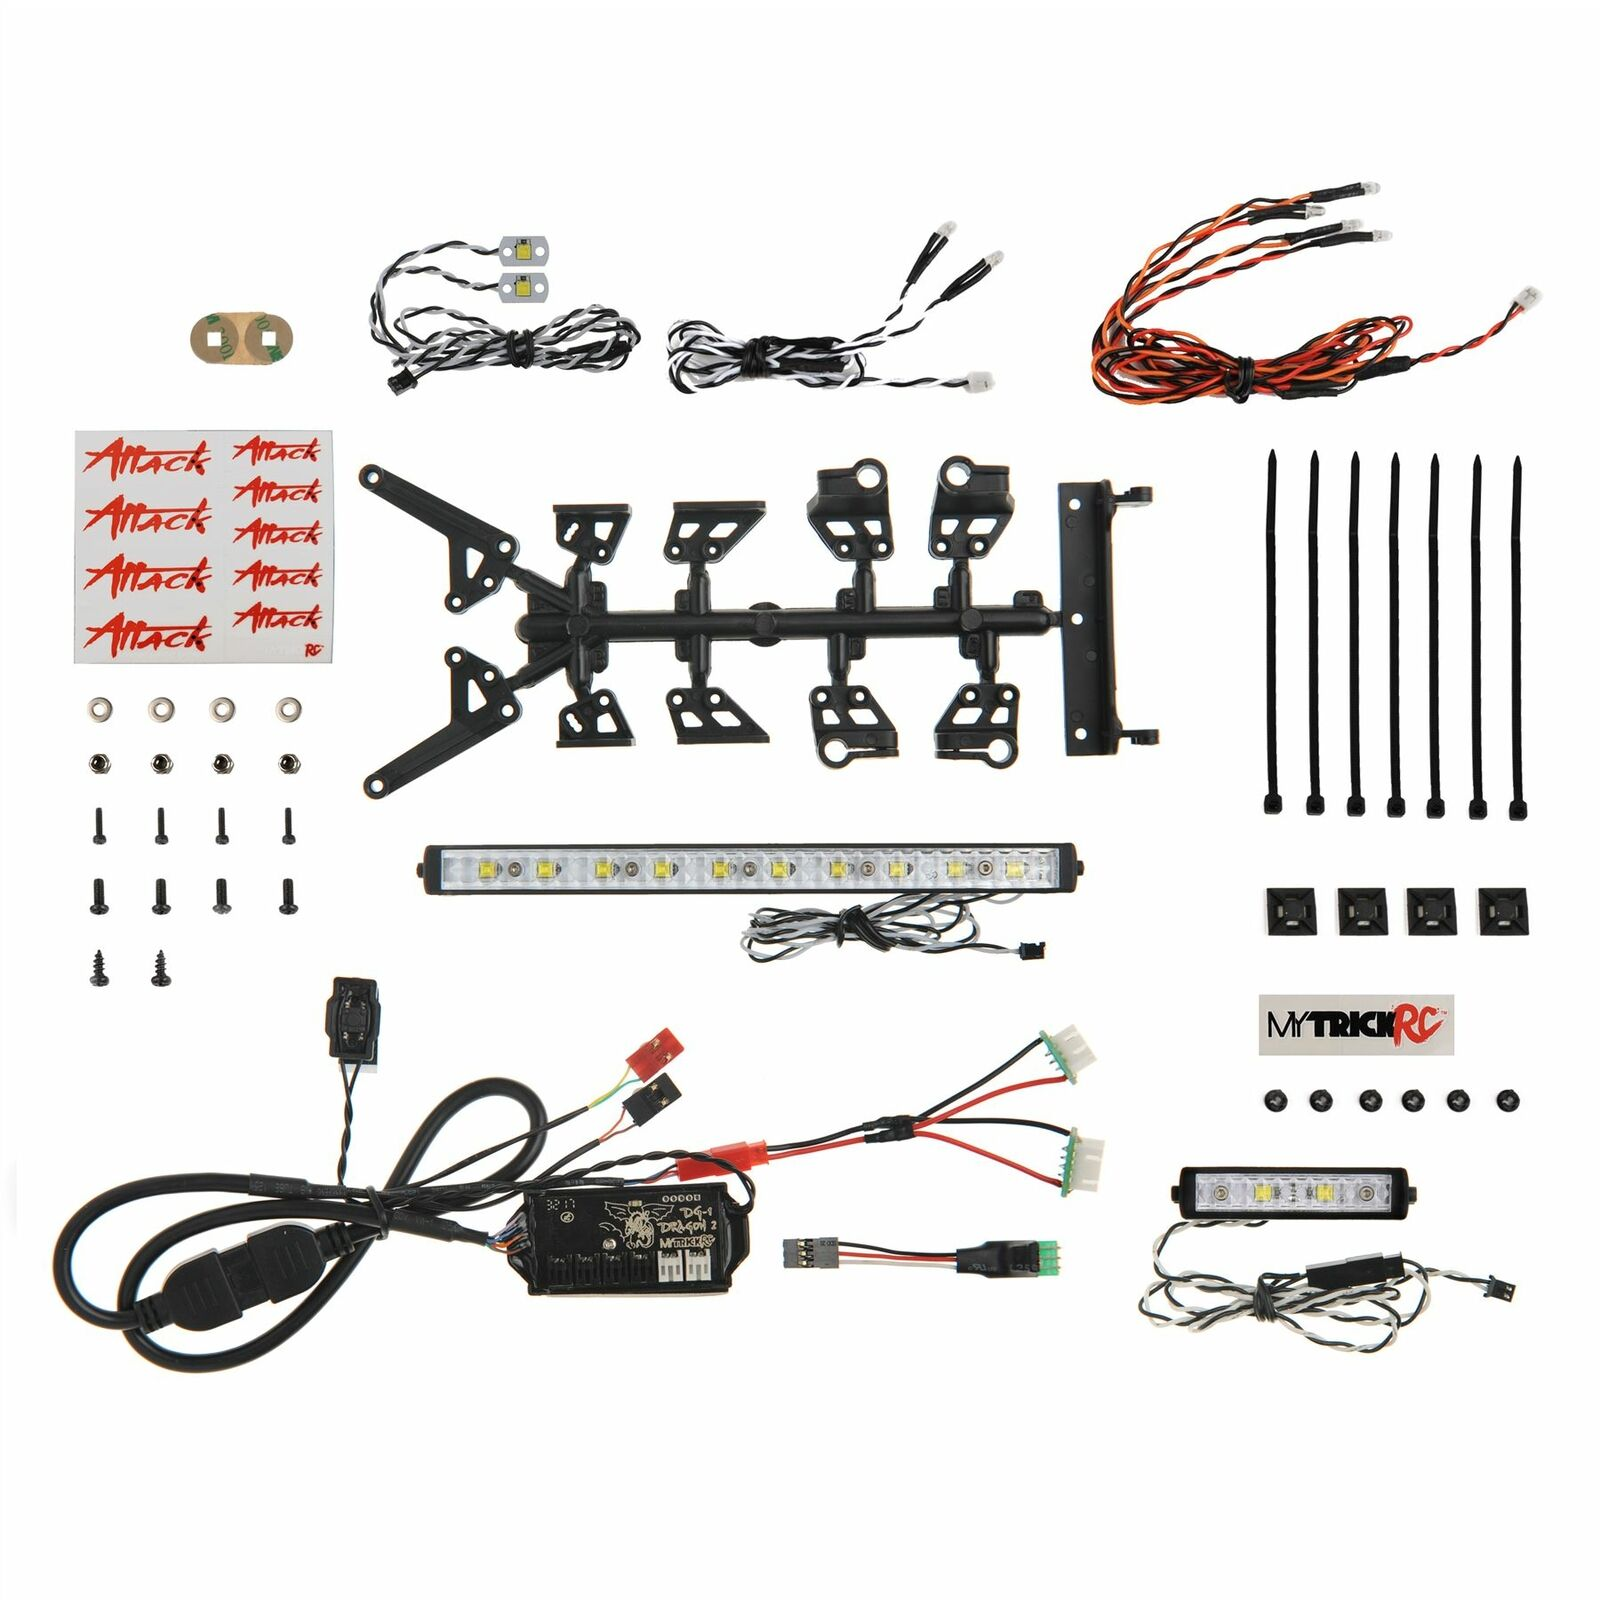 Mytrickrc-Attack Off-Road 1062 Kit De Barra De Luz-controlador 1-DG-1